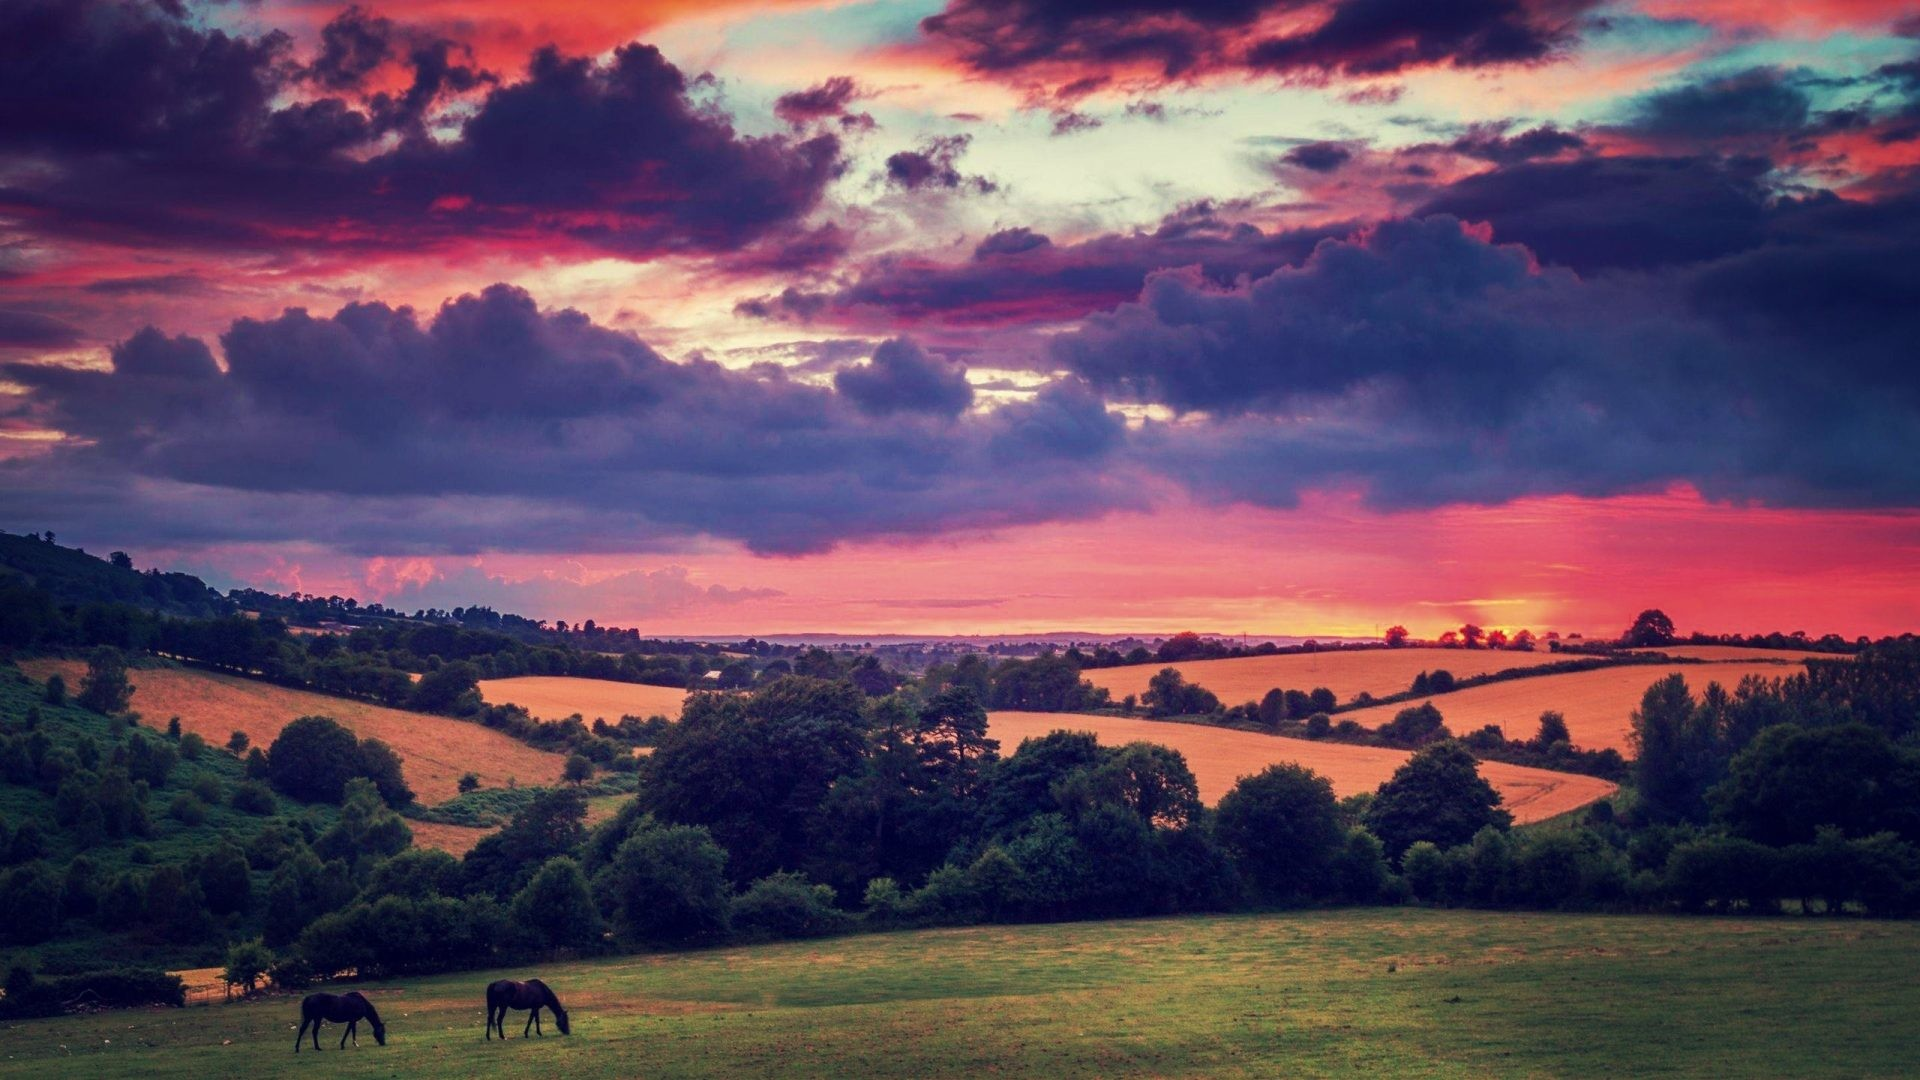 1920x1080 Plains Tag - Hills Irish Animals Fields Clouds Plains Trees Flora Sunset  Ireland Nature Evening Horses